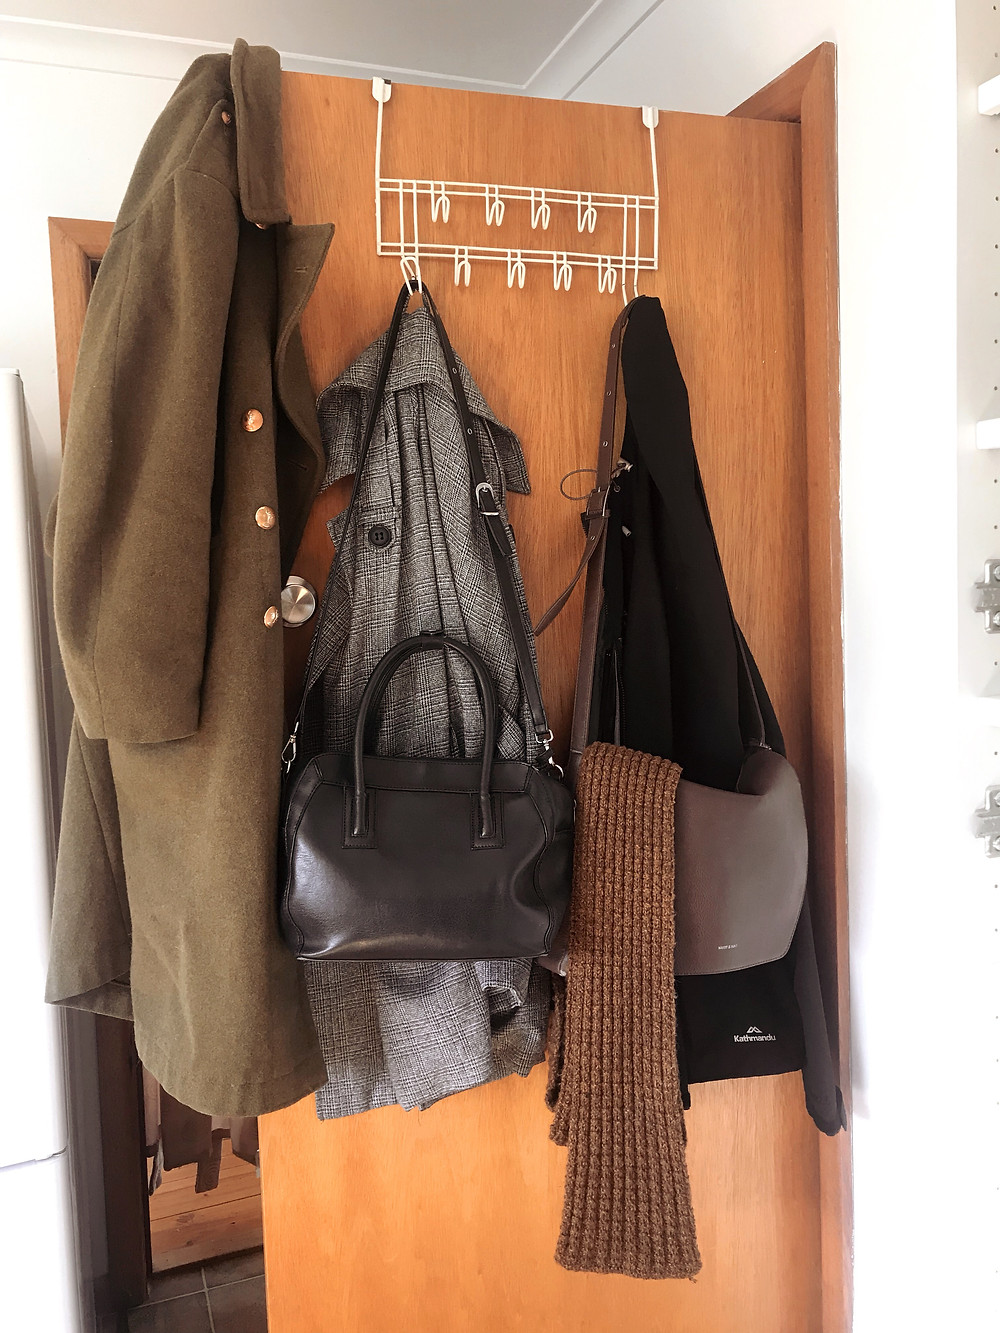 Room for coats and bags